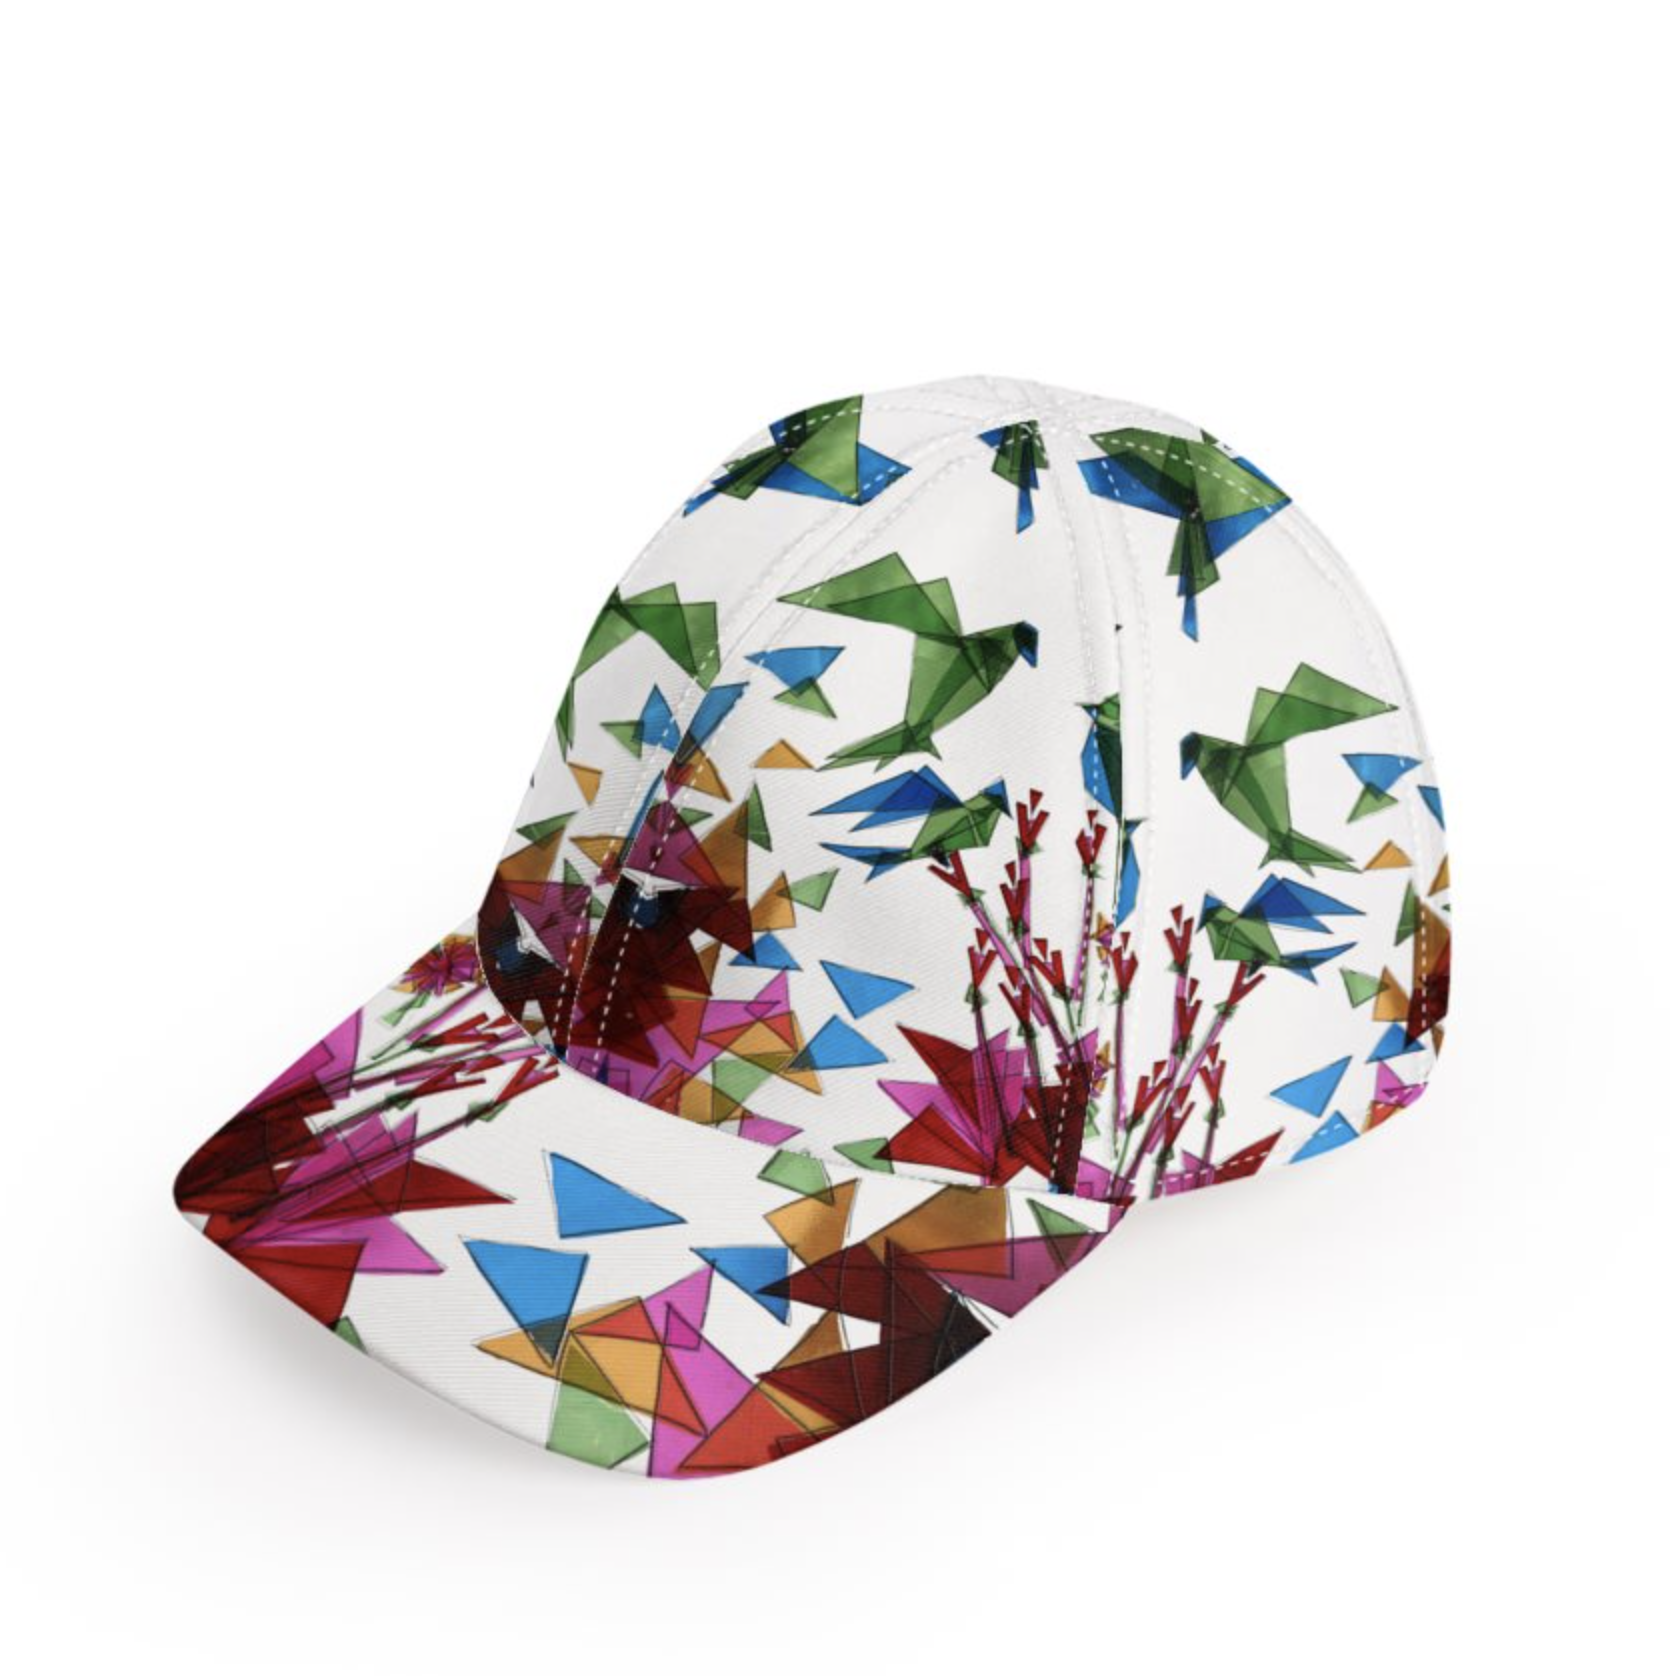 e80c92594cc Cotton Printed Baseball Cap - BEACH GETAWAY